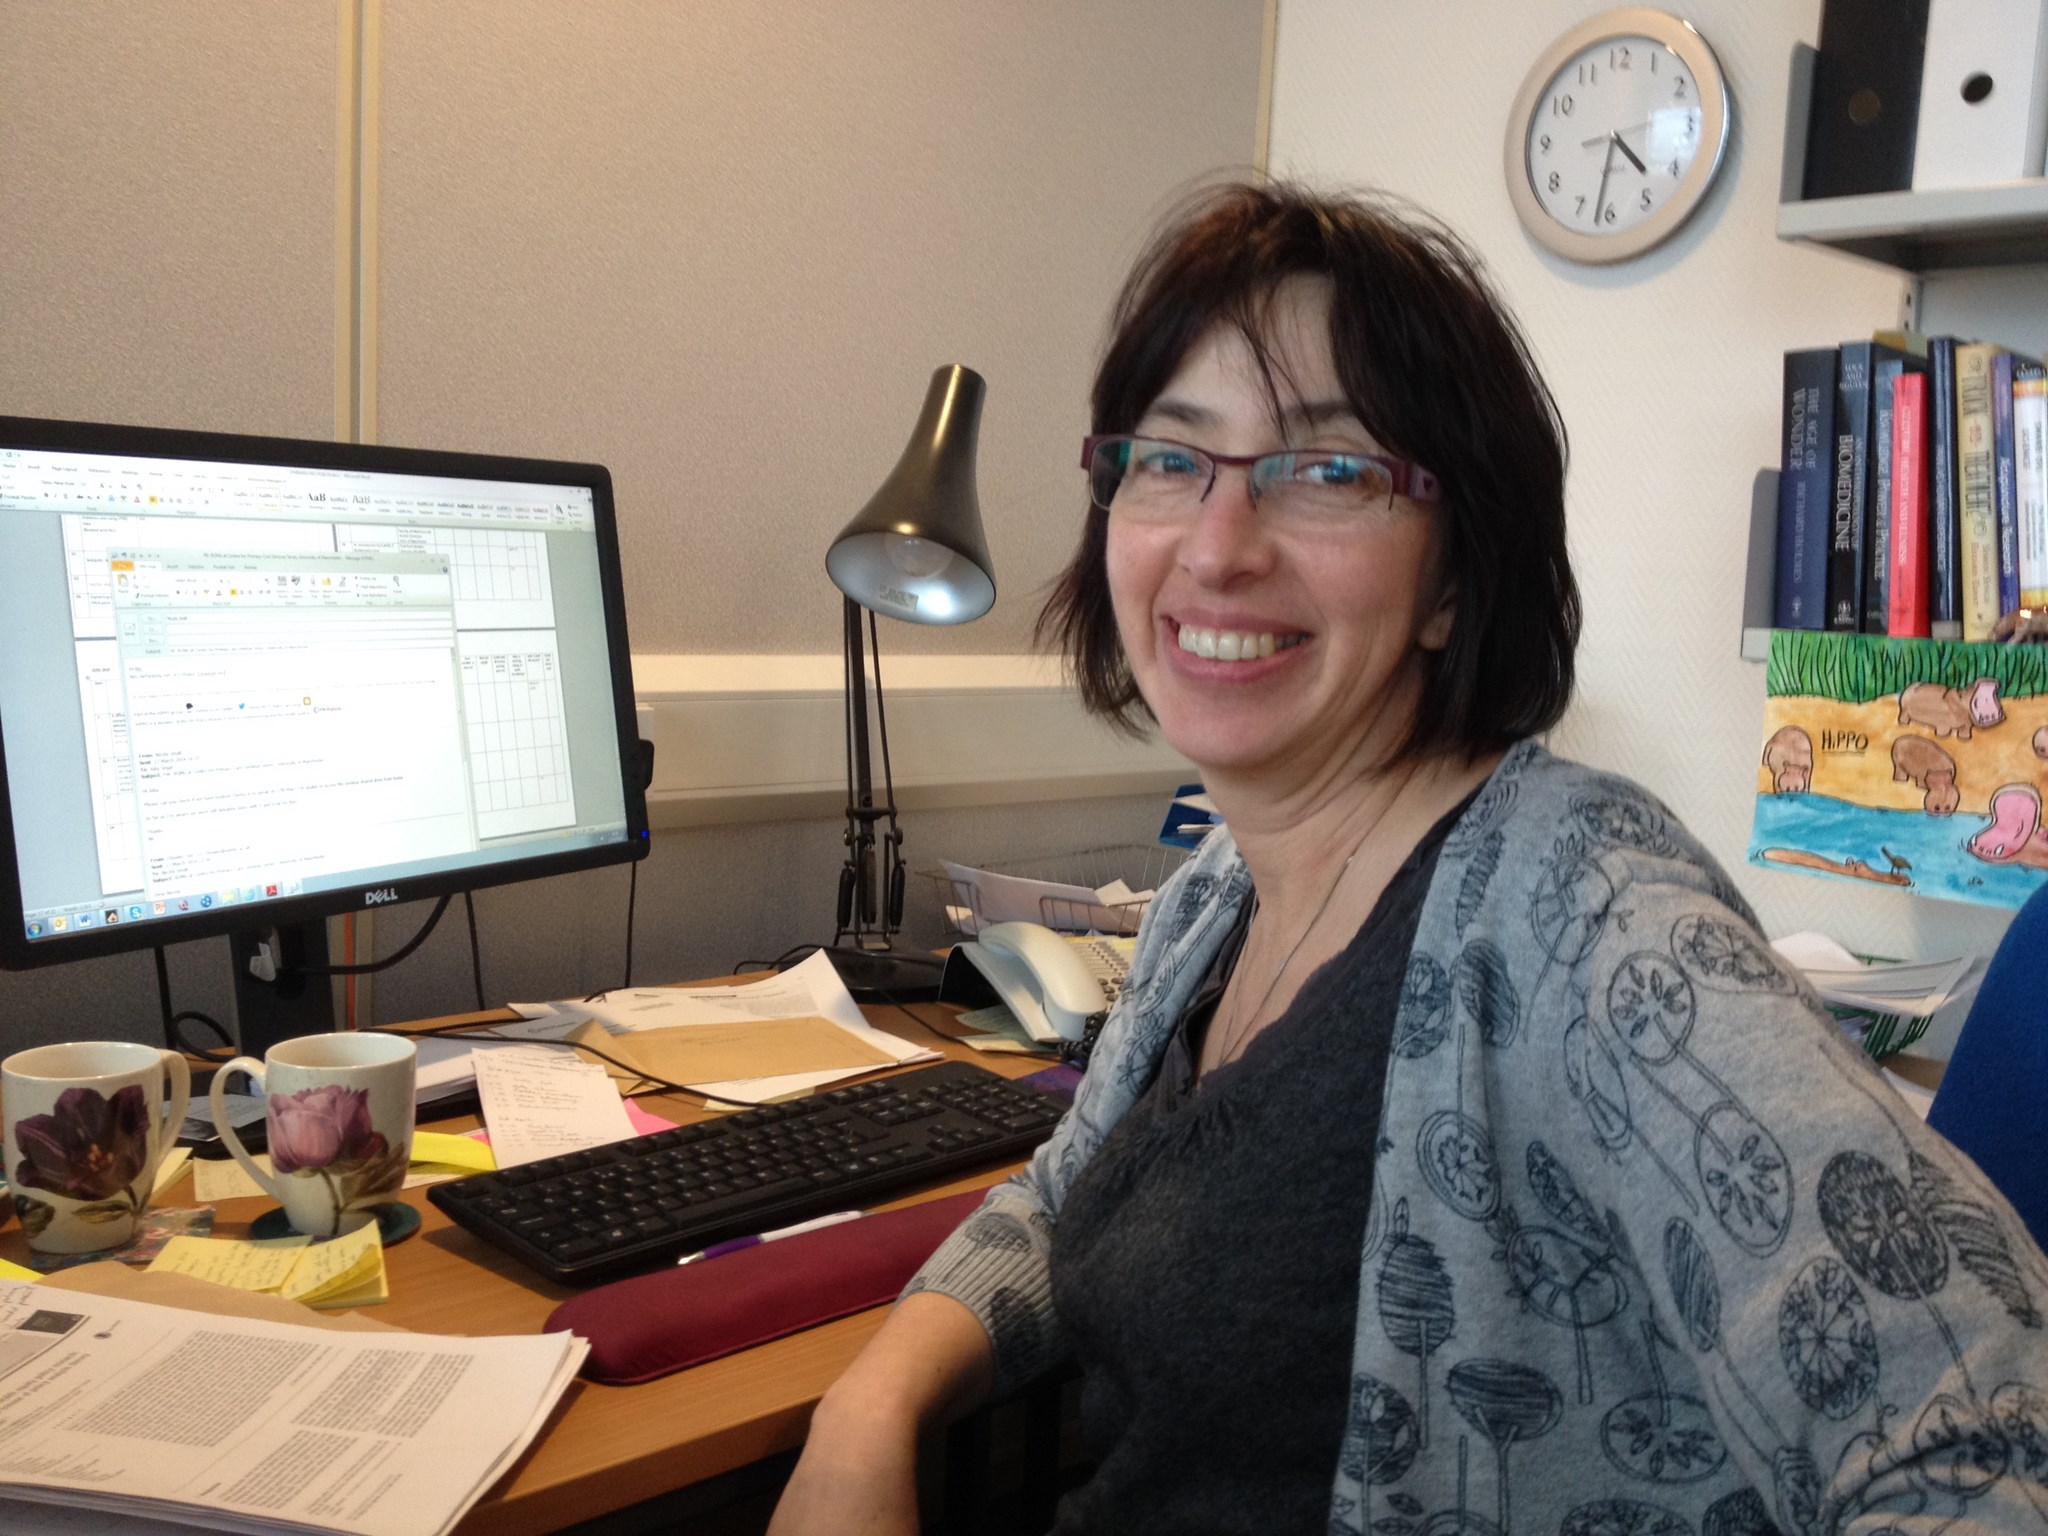 Julia in her office at the Centre for Primary Care, University of Manchester